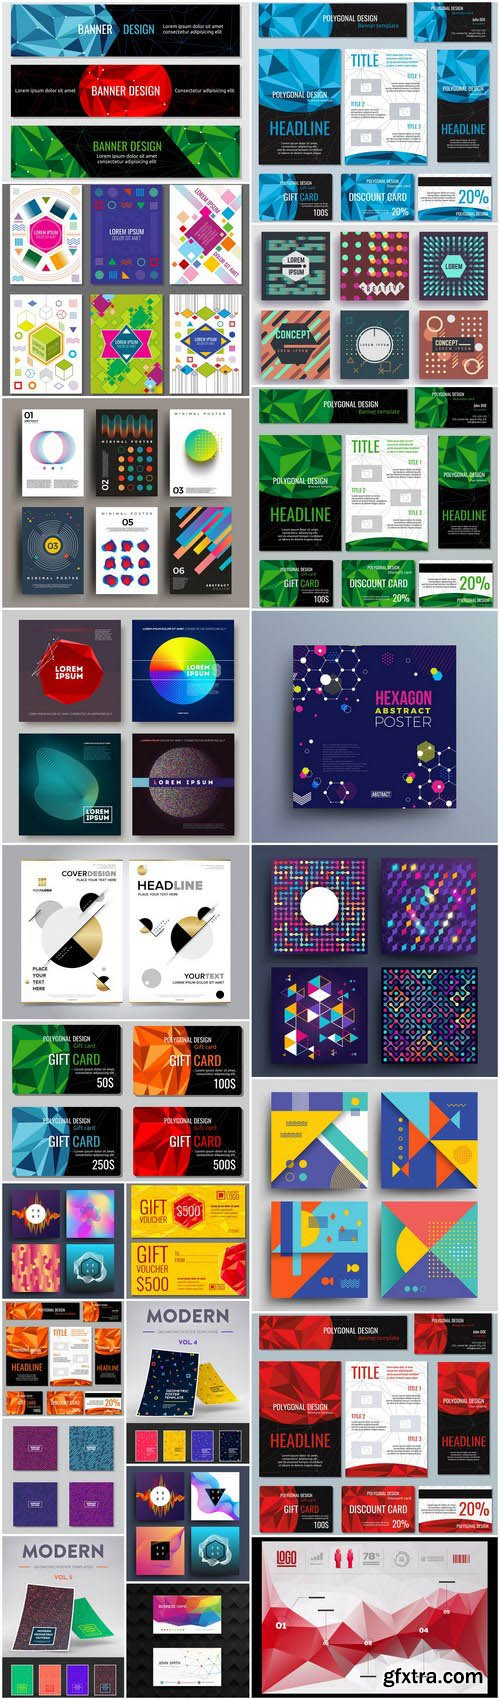 Abstract Geomeric Template Design - 25 Vector